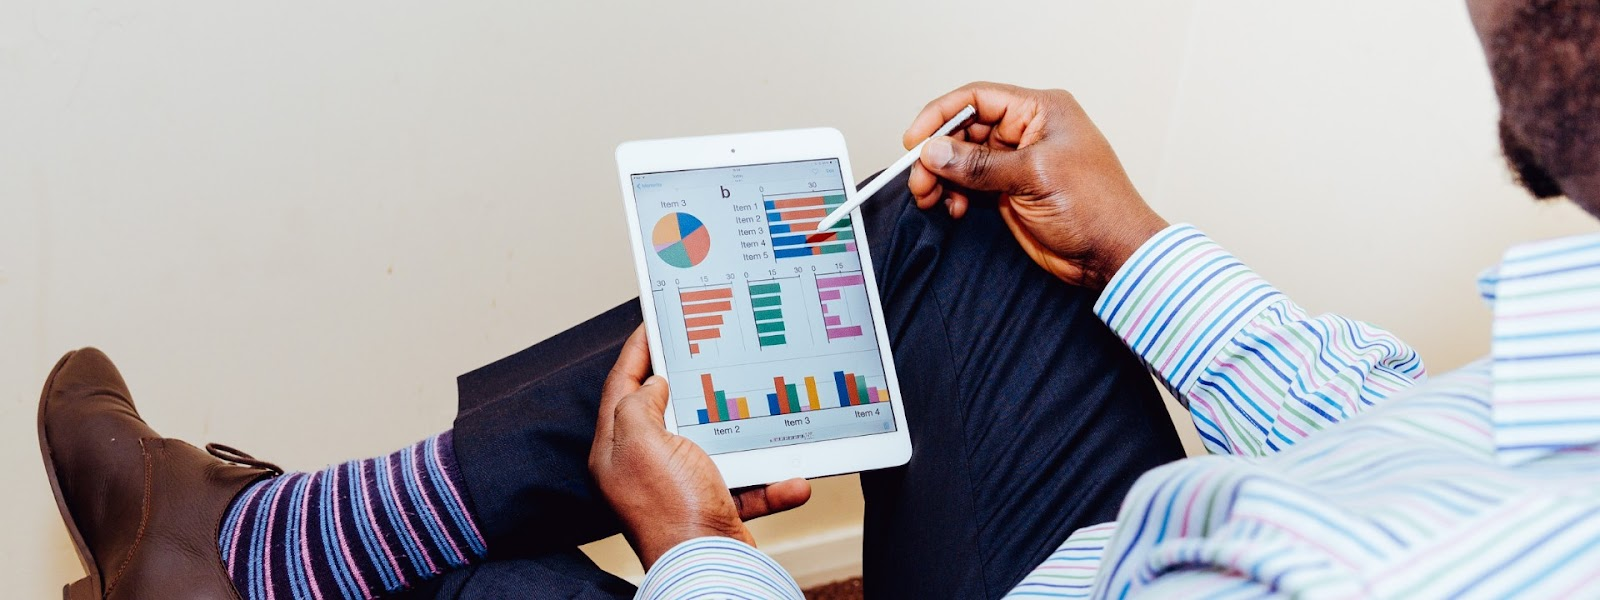 a business case looks at the wrong data for analyzing creative ideas